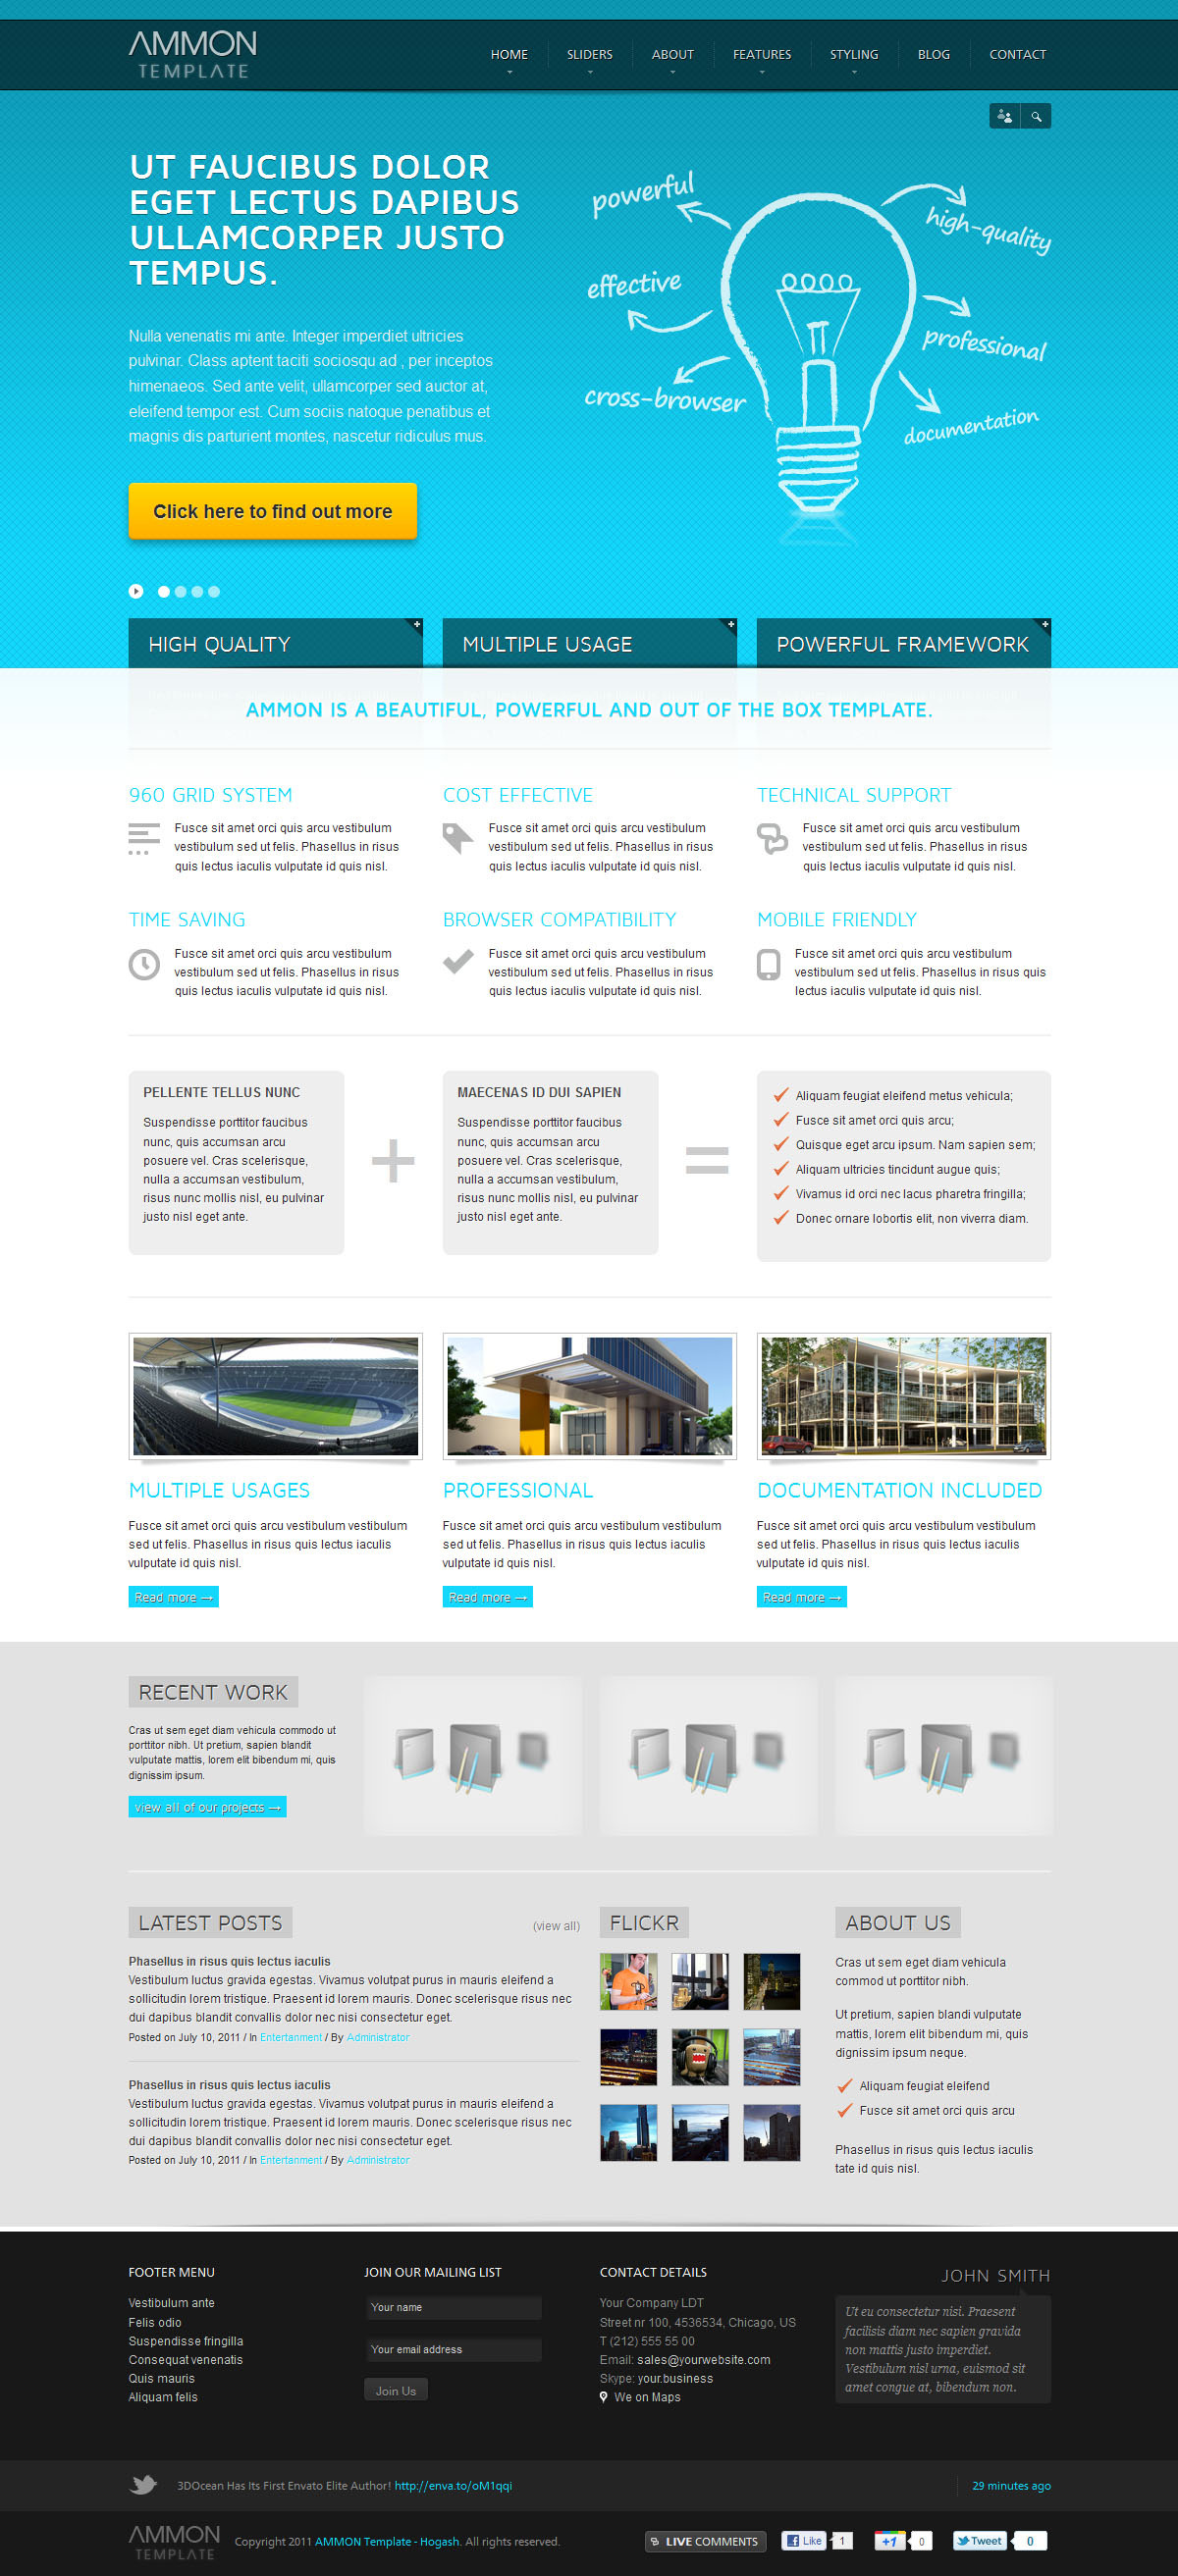 Ammon Responsive Template for Joomla - GENERAL PAGE - HOMEPAGE - ANYTHING SLIDER